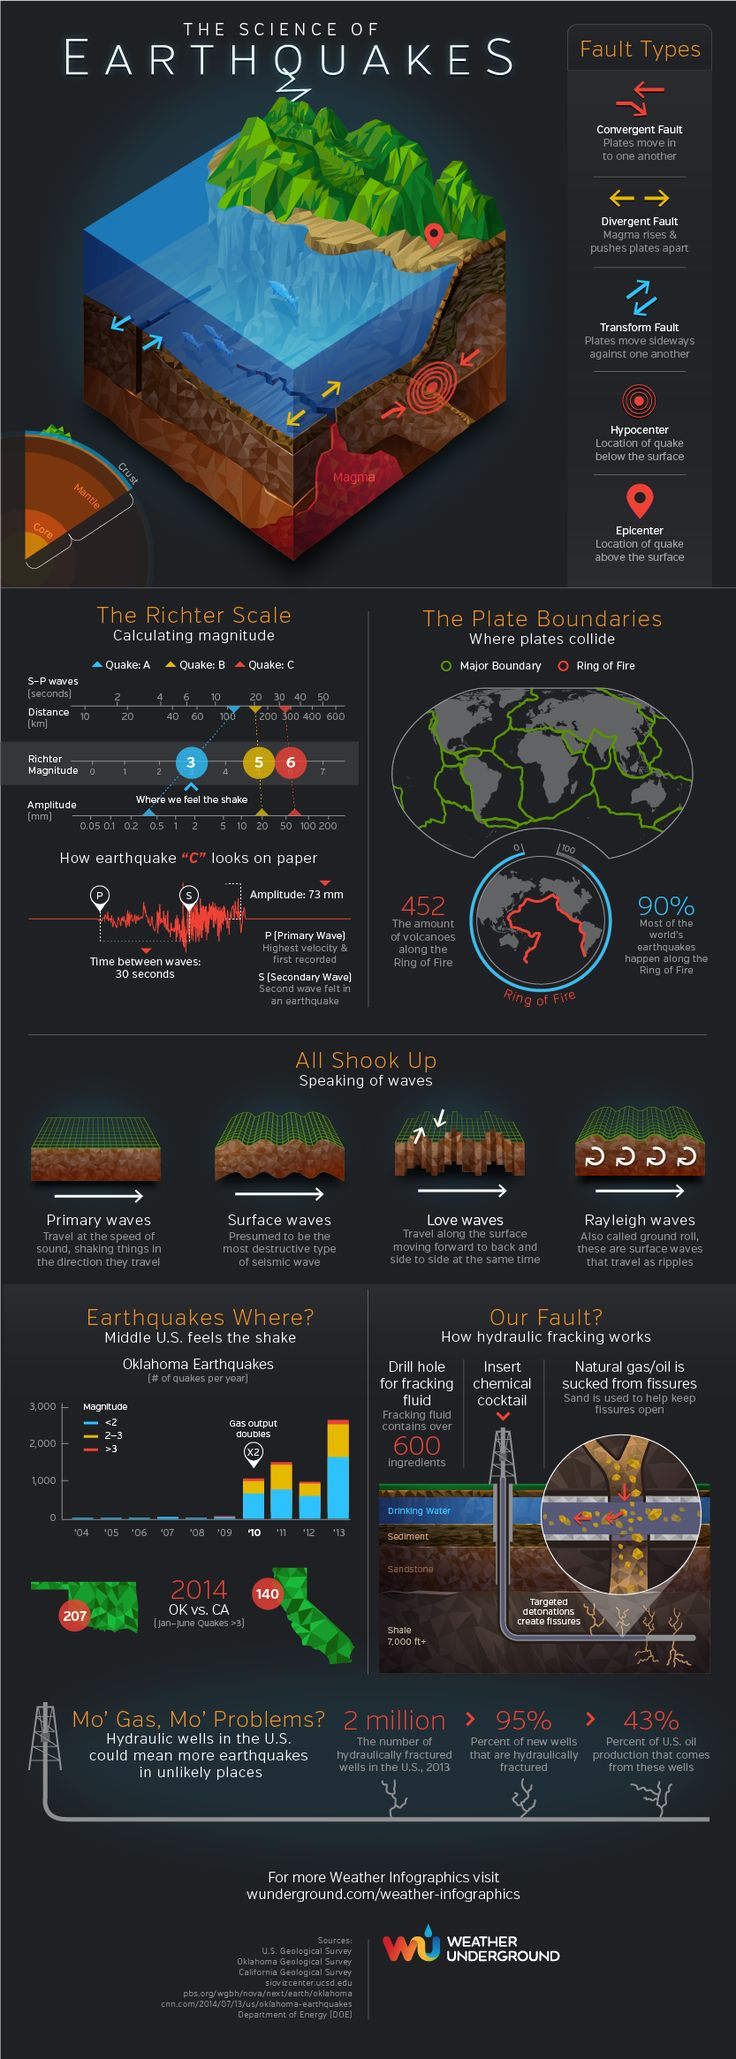 The Science of Earthquakes. A great infographic either to use as is and share with students, or an example for them to make their own.